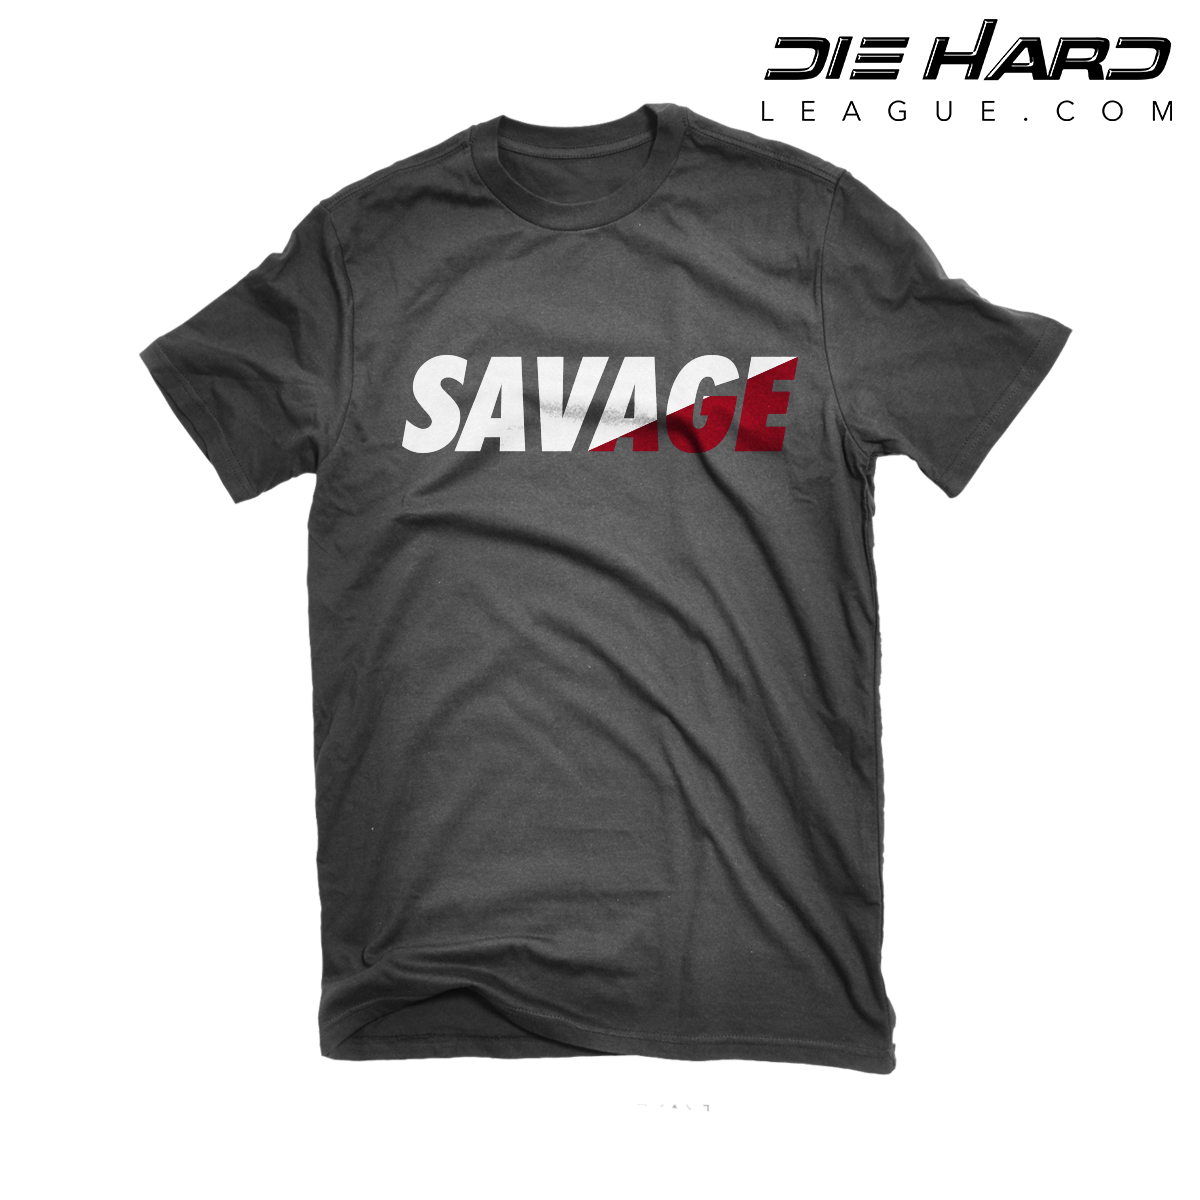 Savage transparent t shirt. Arizona cardinal shirts black